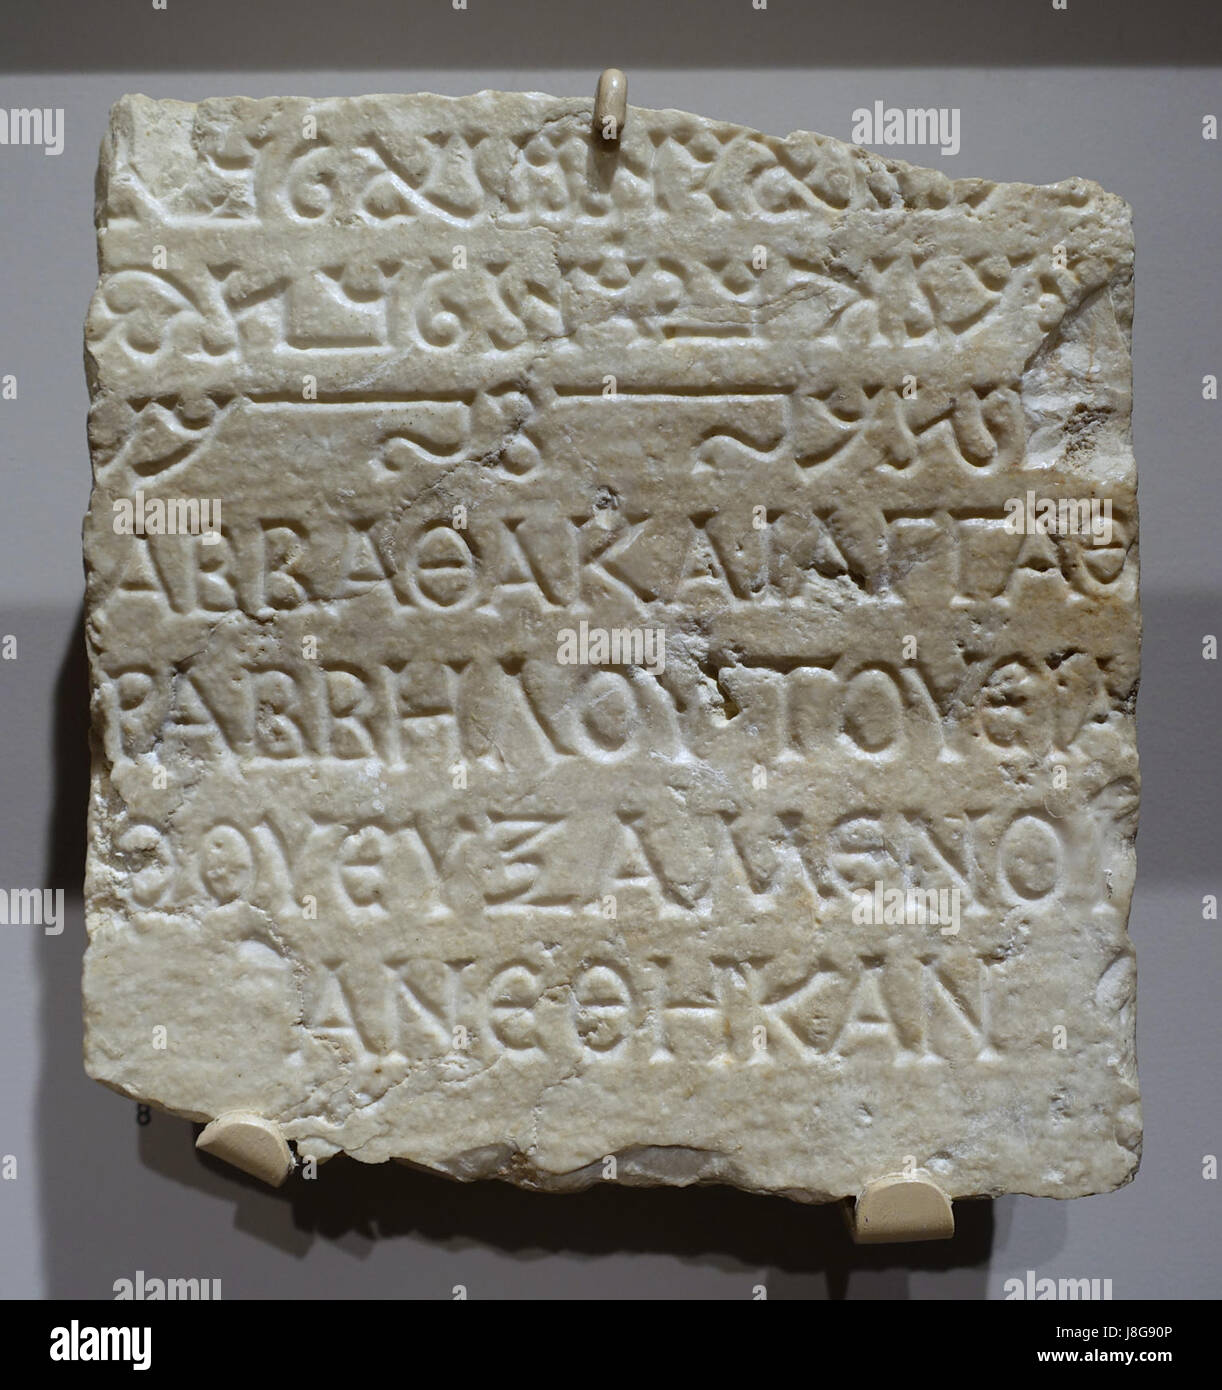 Inscribed stela fragment with Palmyrene and Greek script, Palmyra, Syria, c. 1st 3rd century AD, marble   Harvard - Stock Image